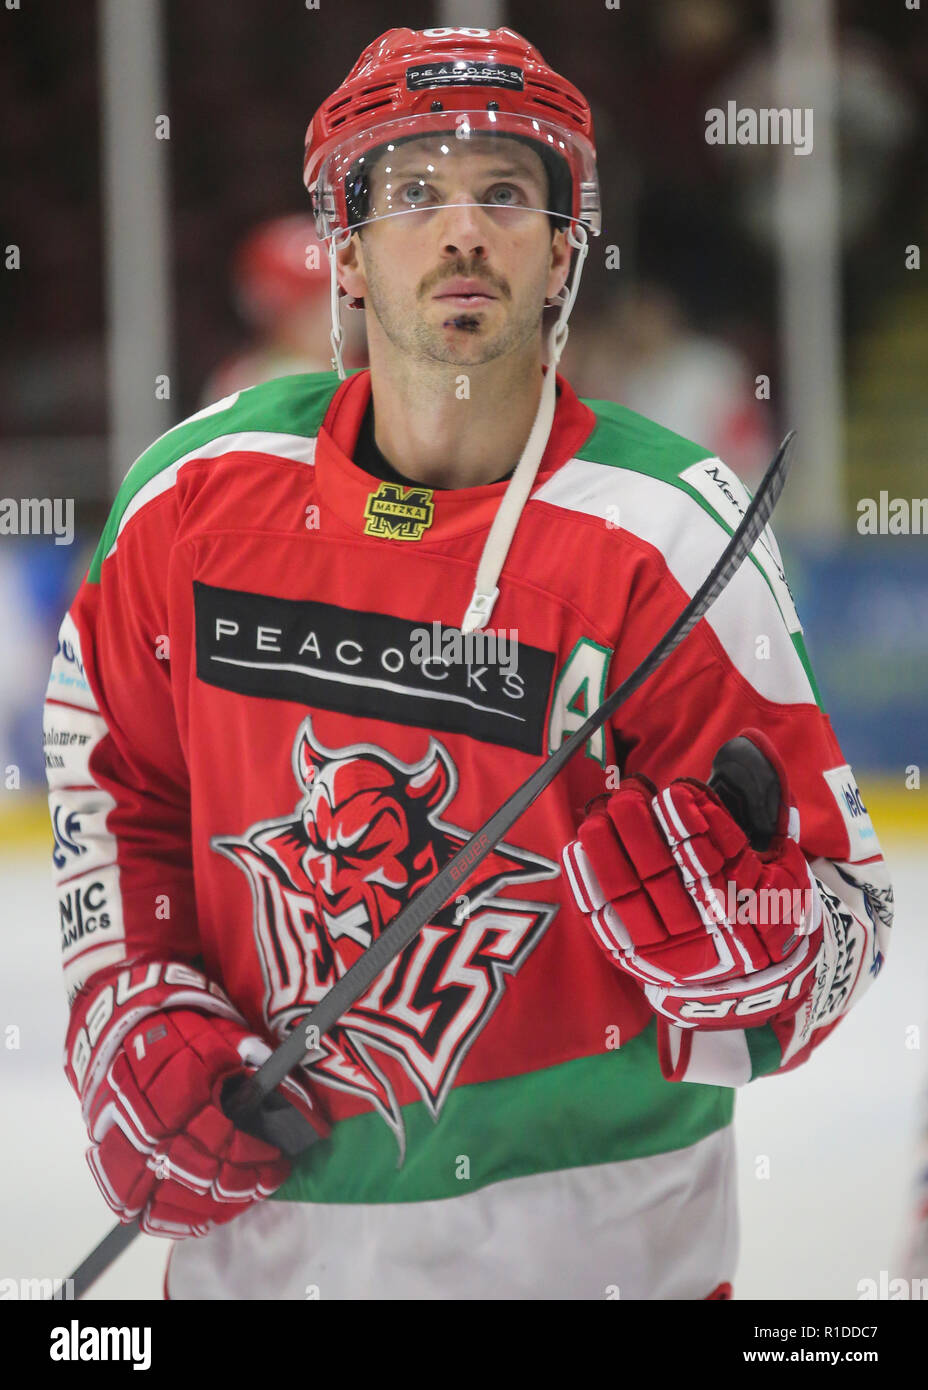 Ice Arena Wales, Cardiff. 11th November 2018. Fans enjoy home ice hockey game Cardiff Devils Vs Belfast Giants despite 1-8 outcome. - Stock Image